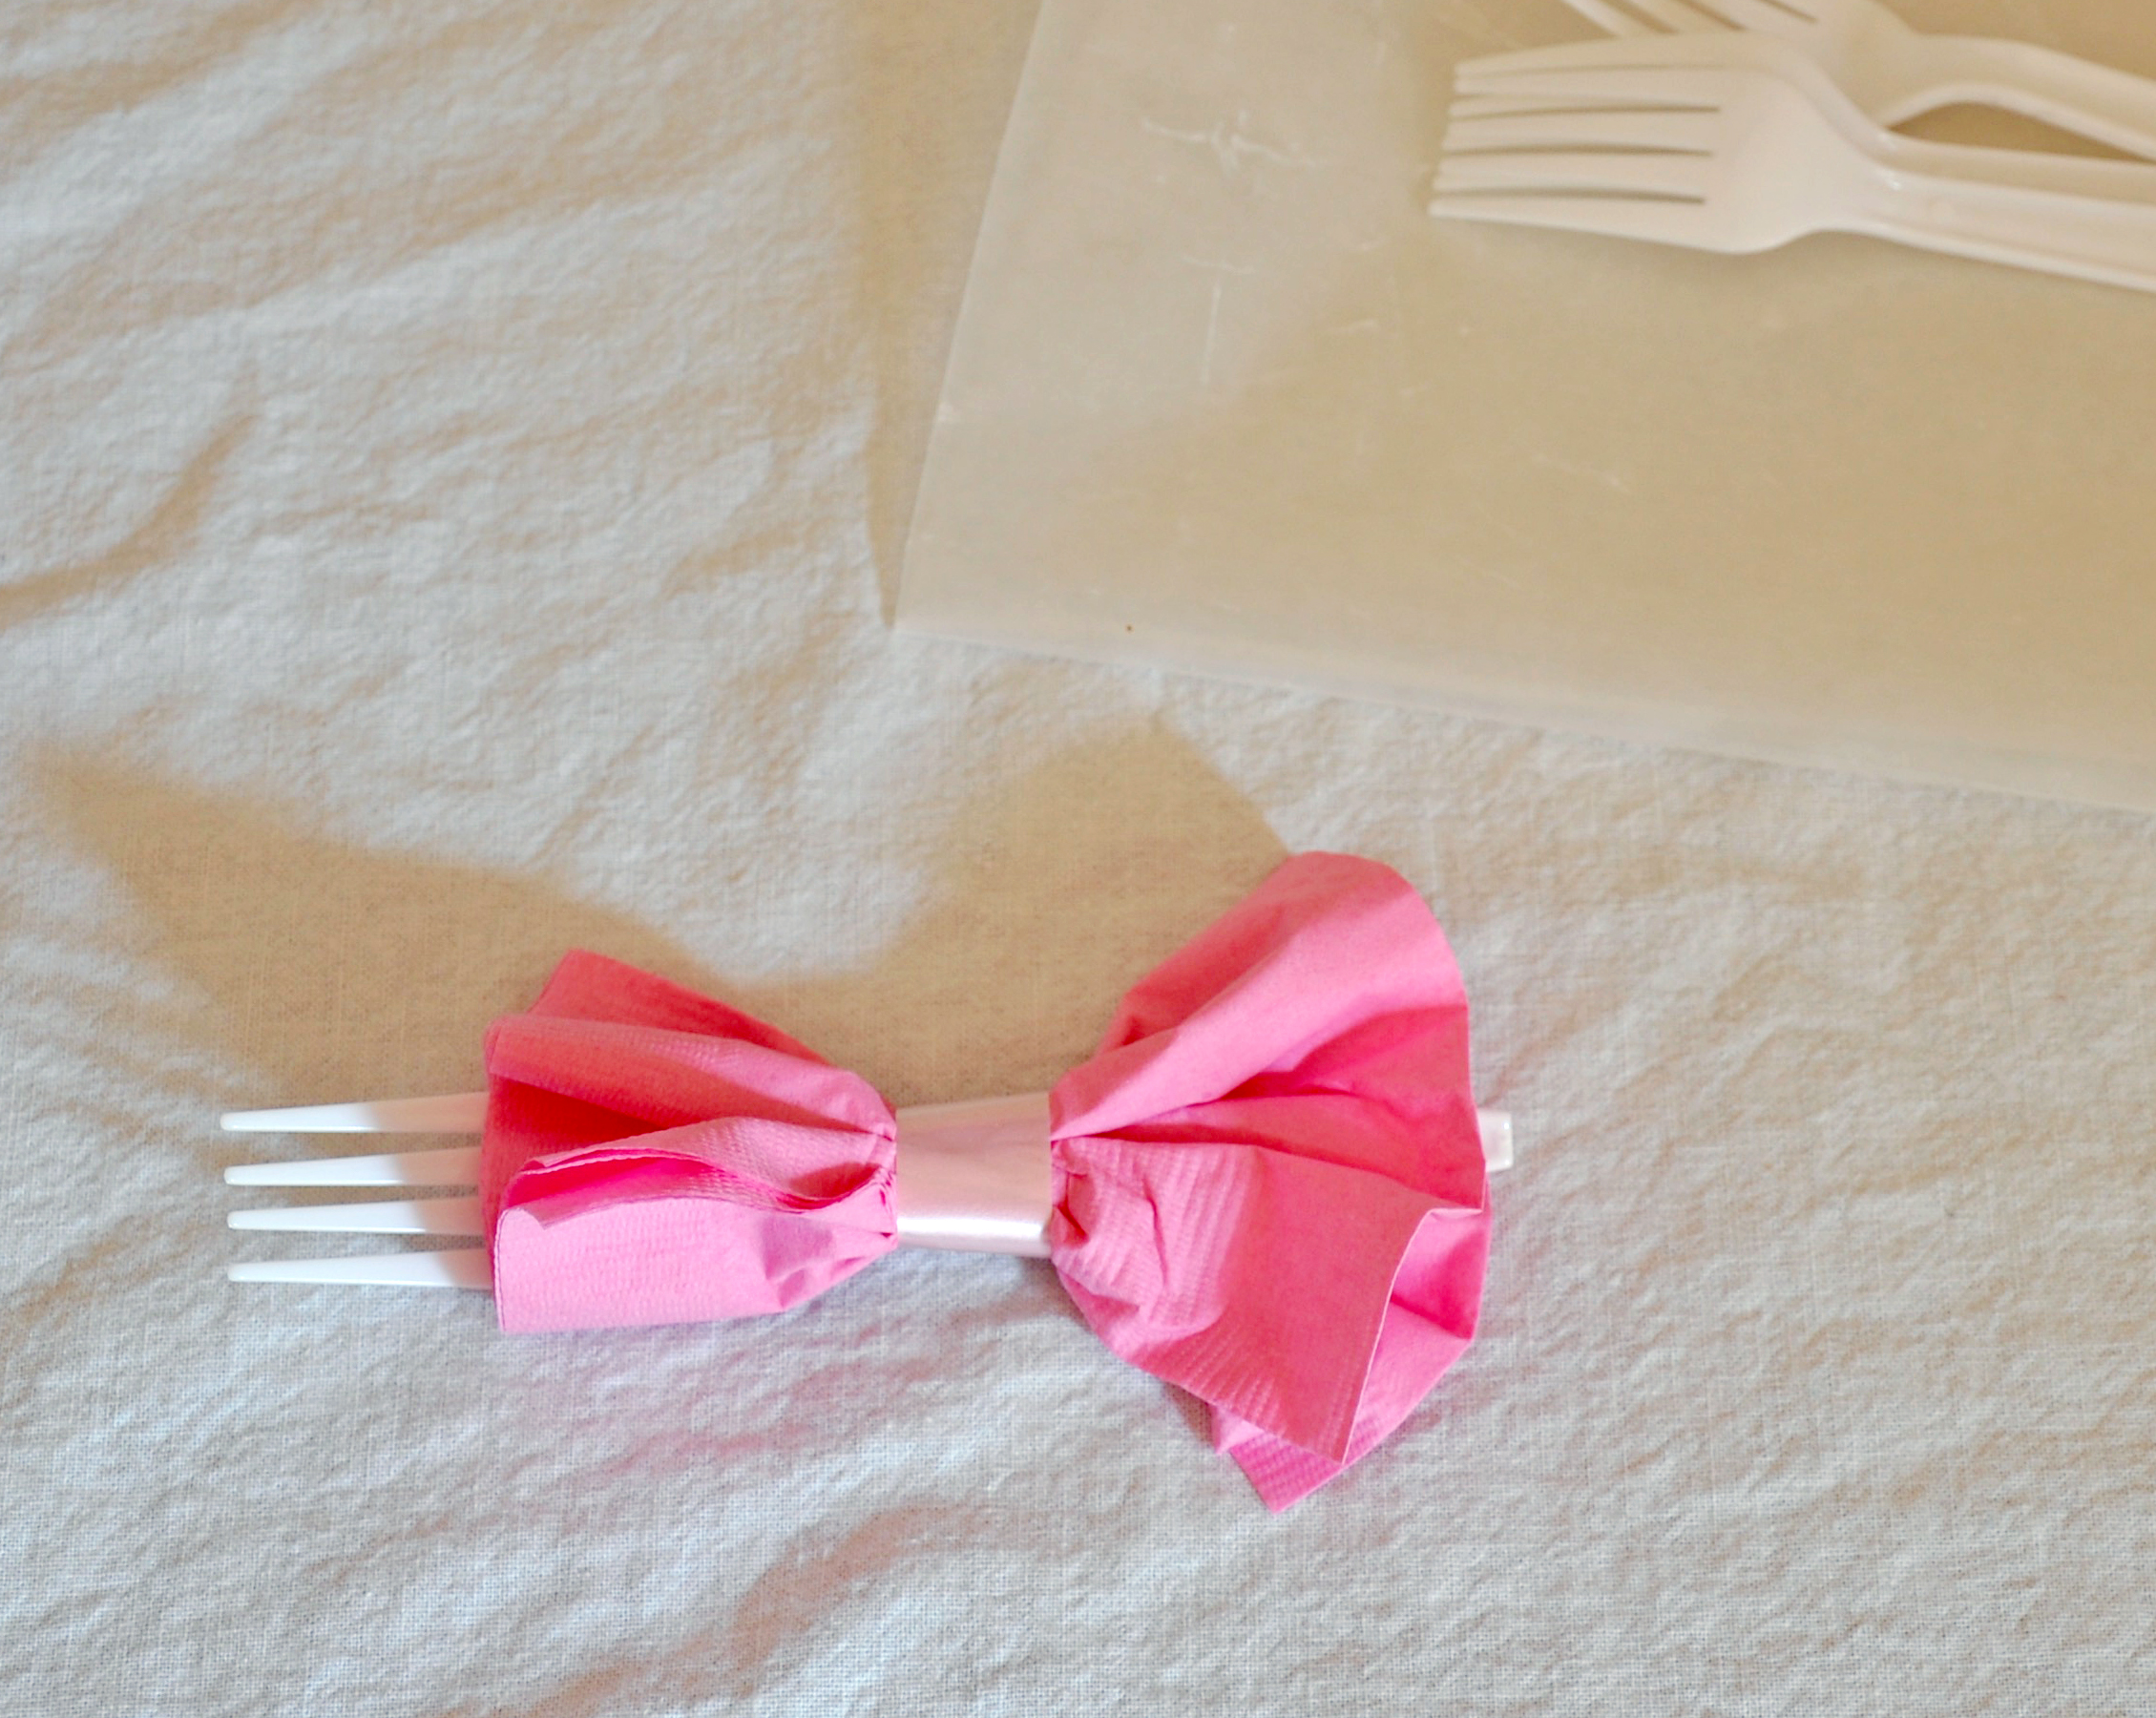 Bow Tie Napkins 3 Steps With Pictures Instructables